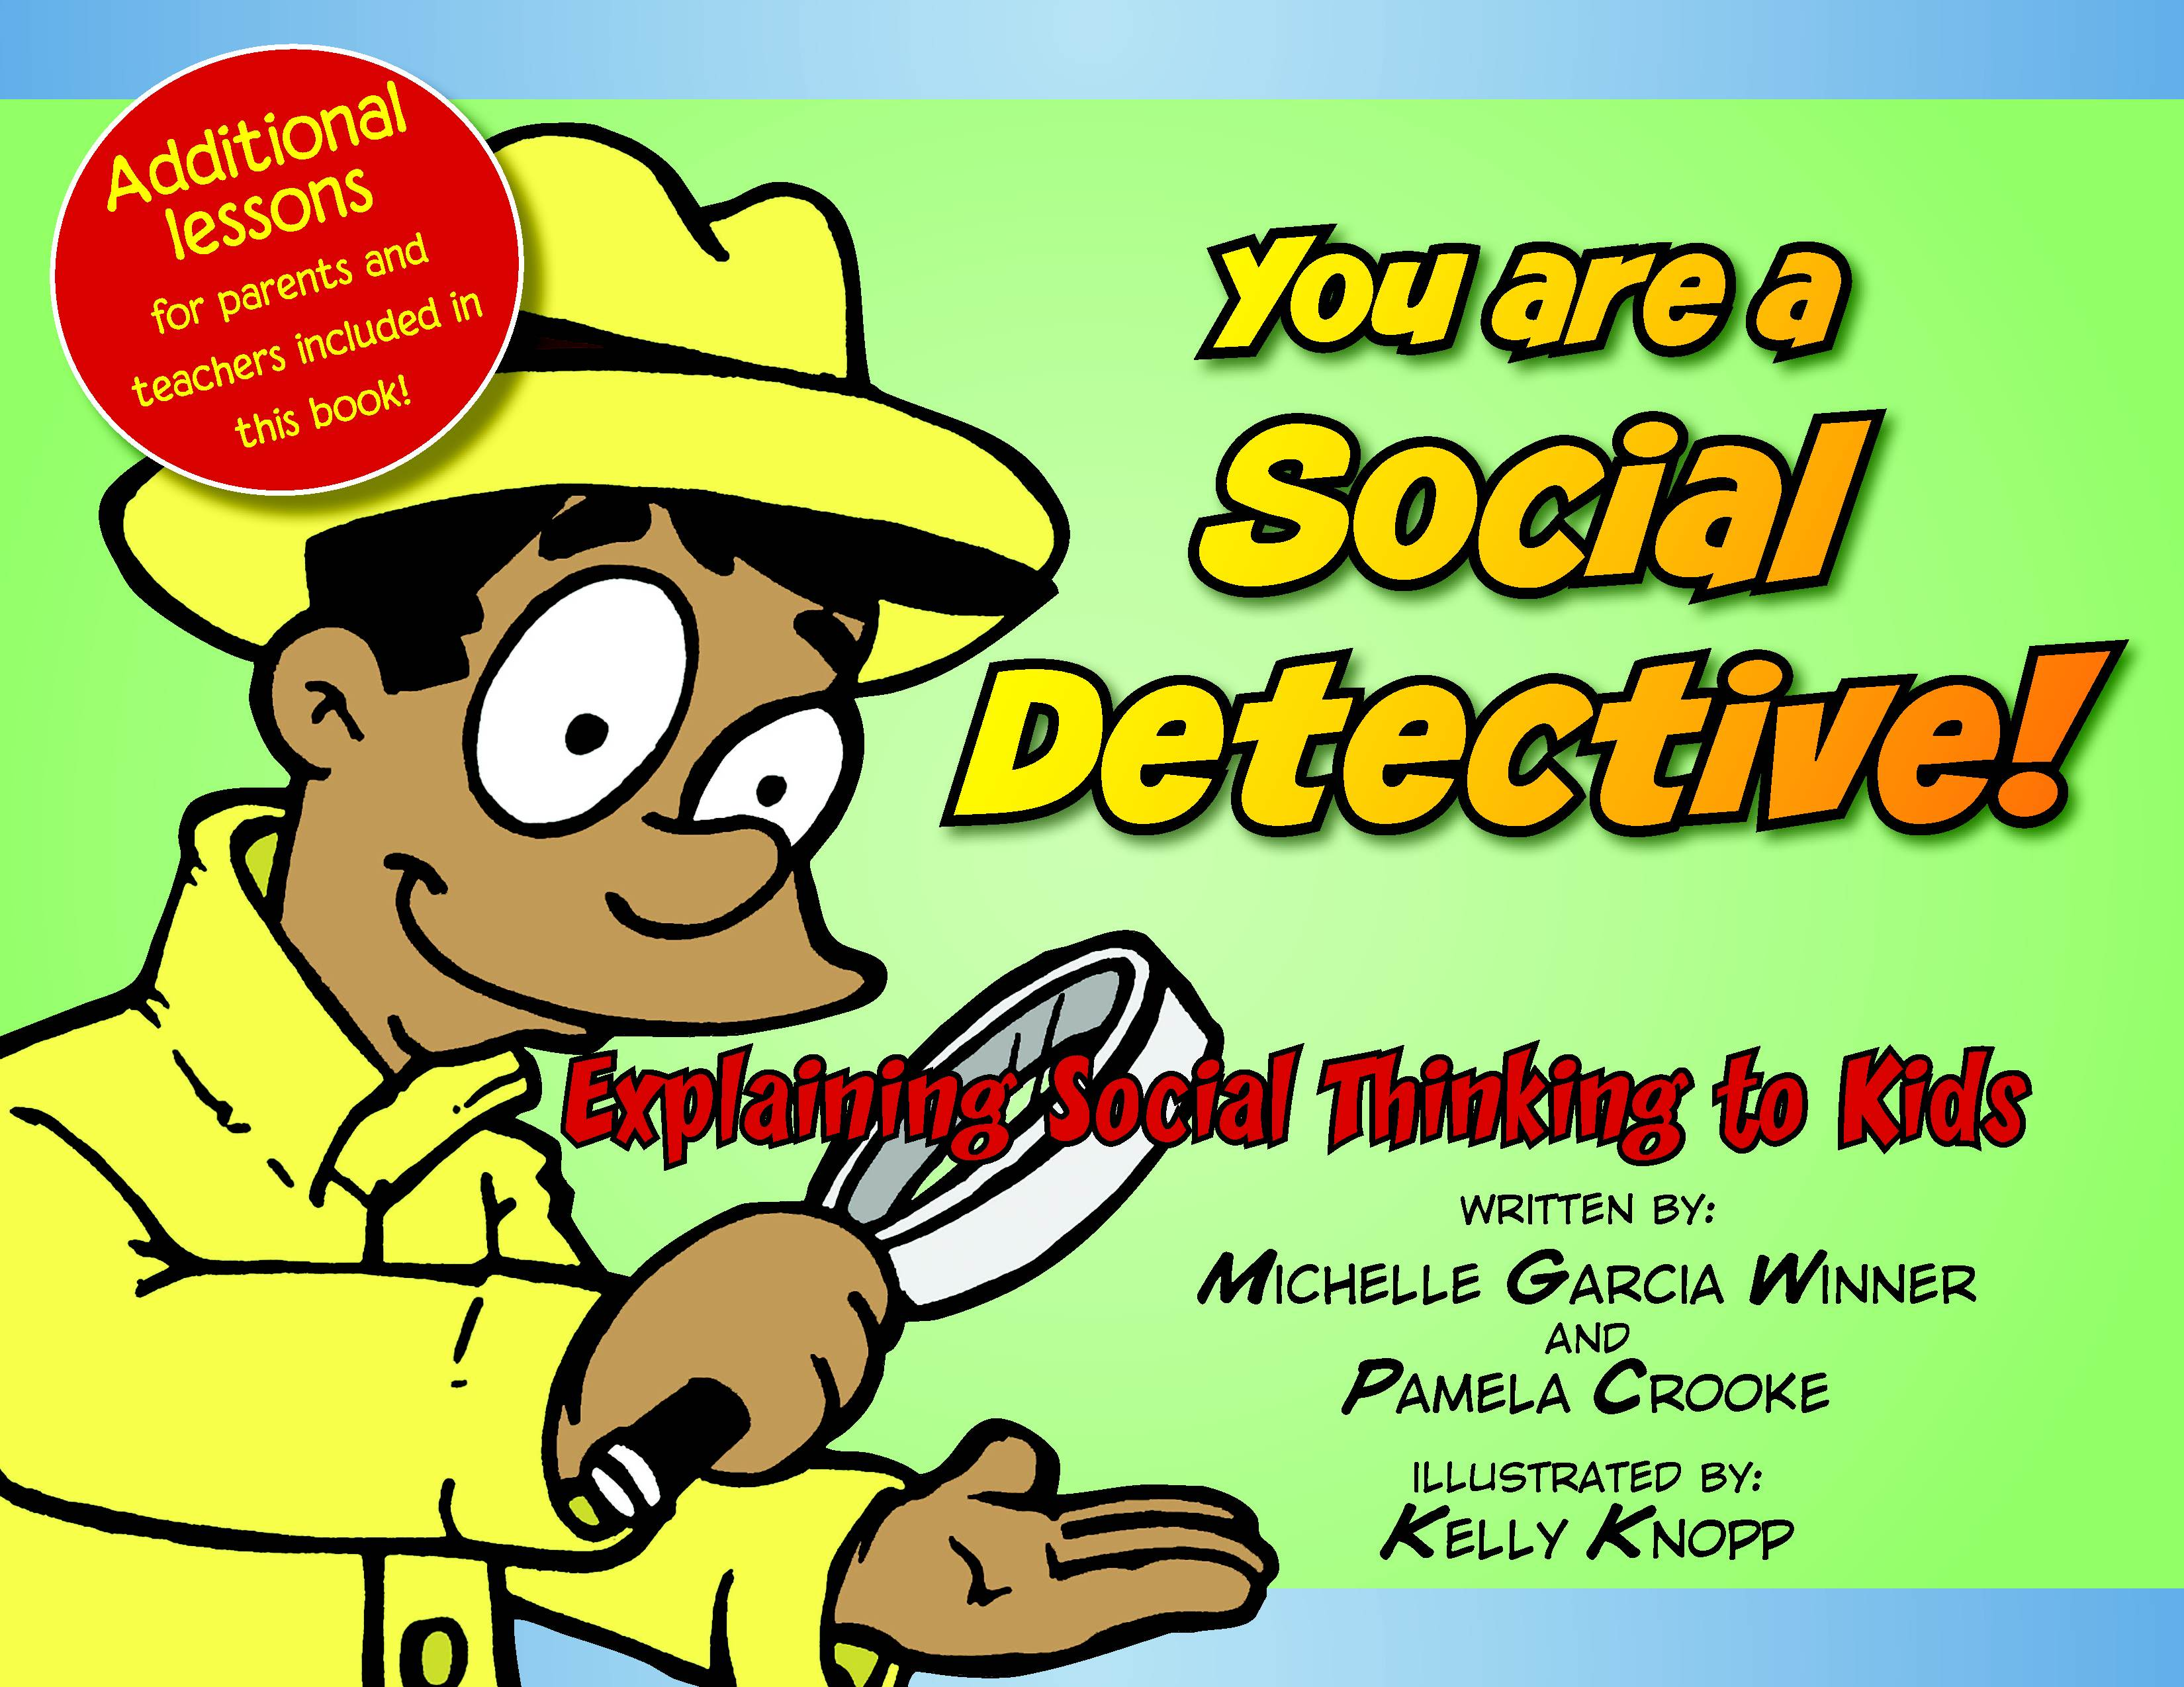 You Are A Social Detective Explaining Social Thinking To